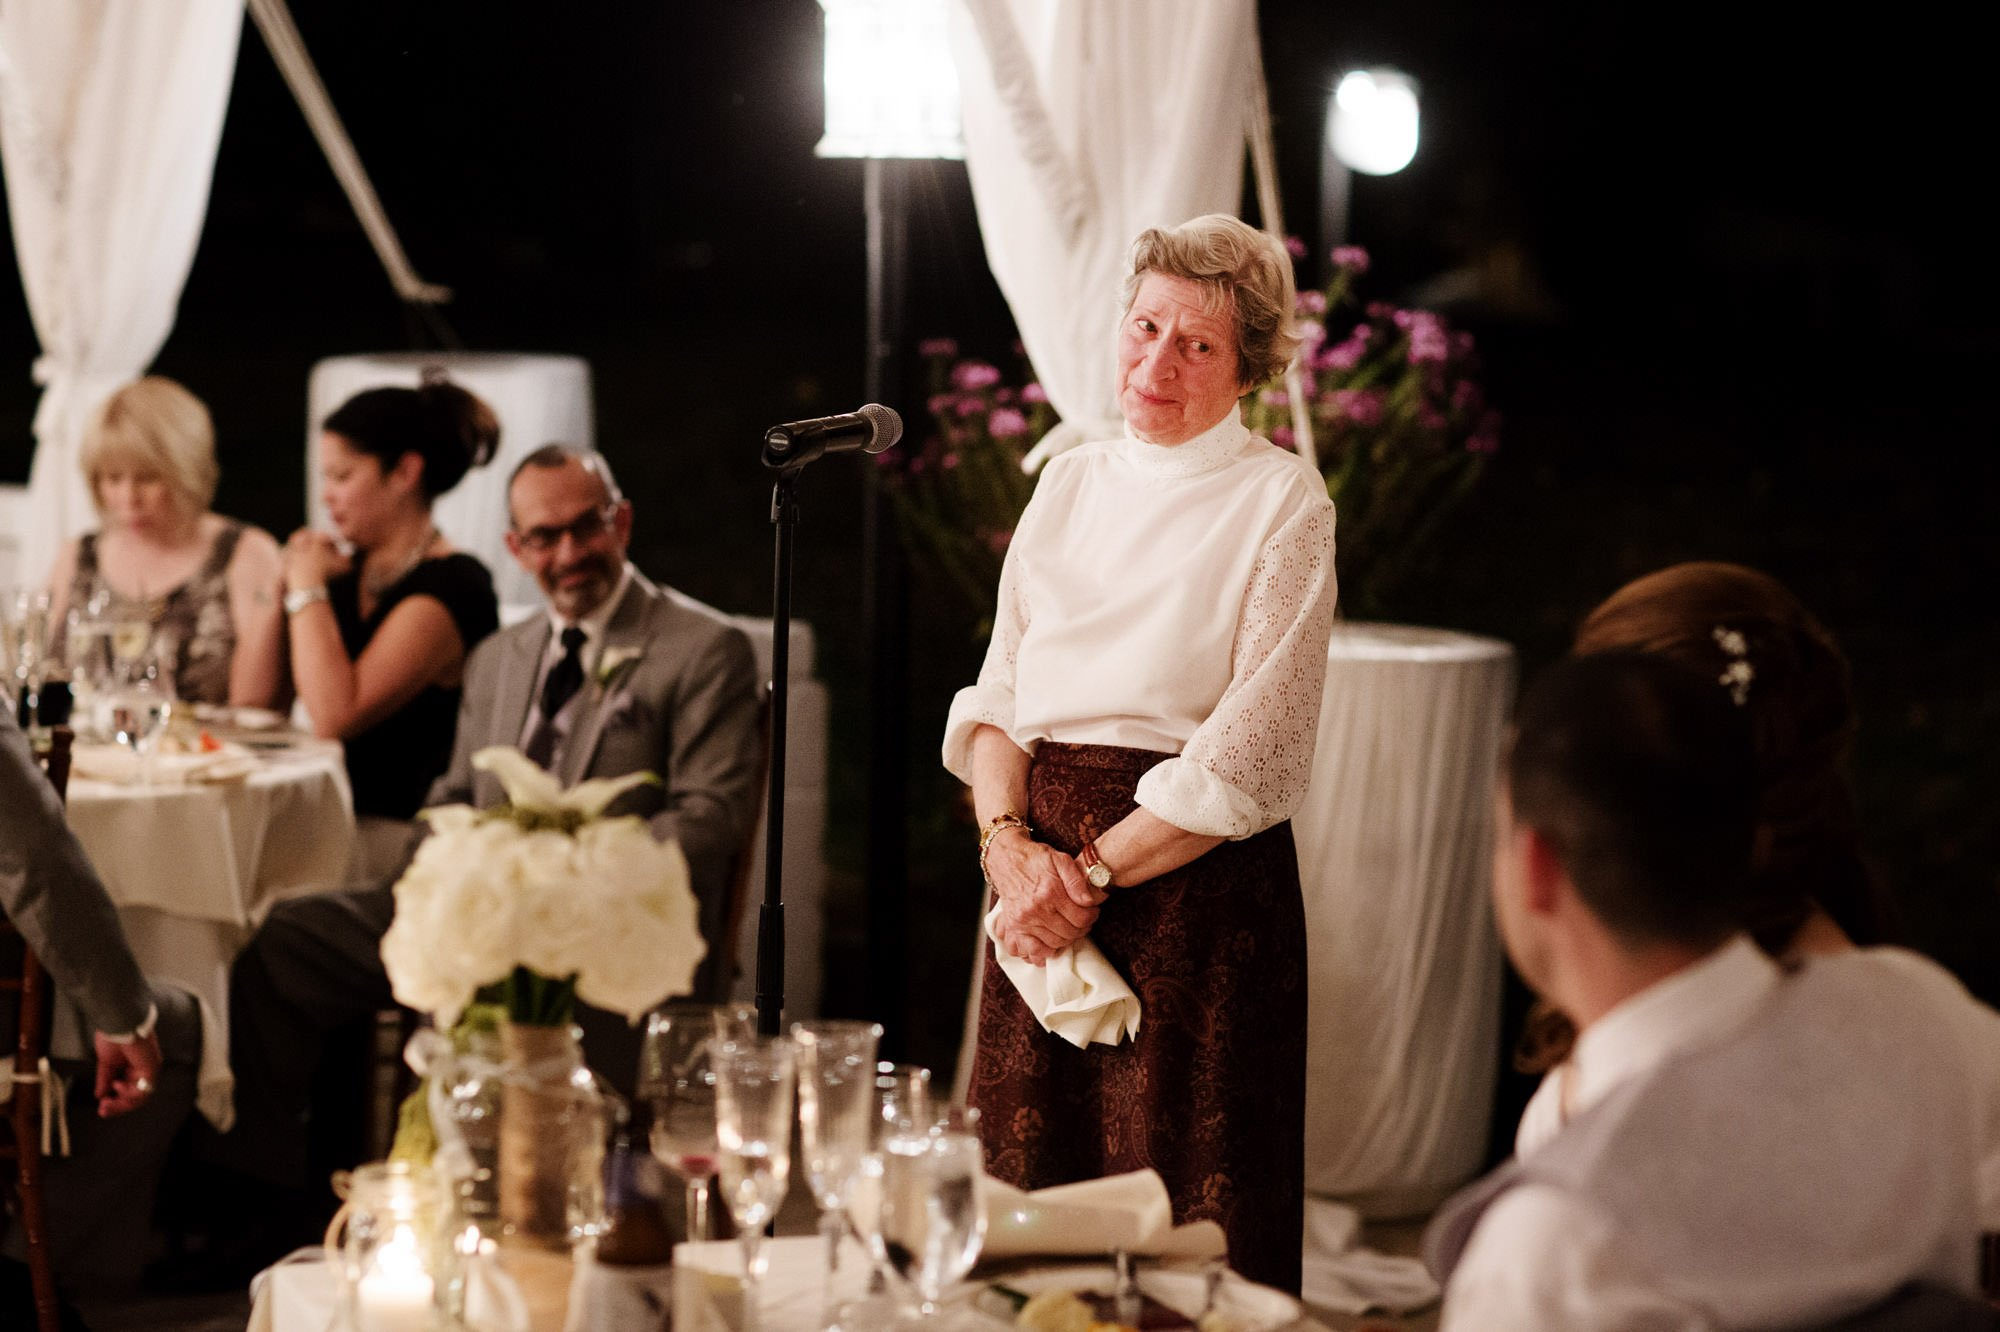 Toasts are given during the tented reception at this Comus Inn wedding.